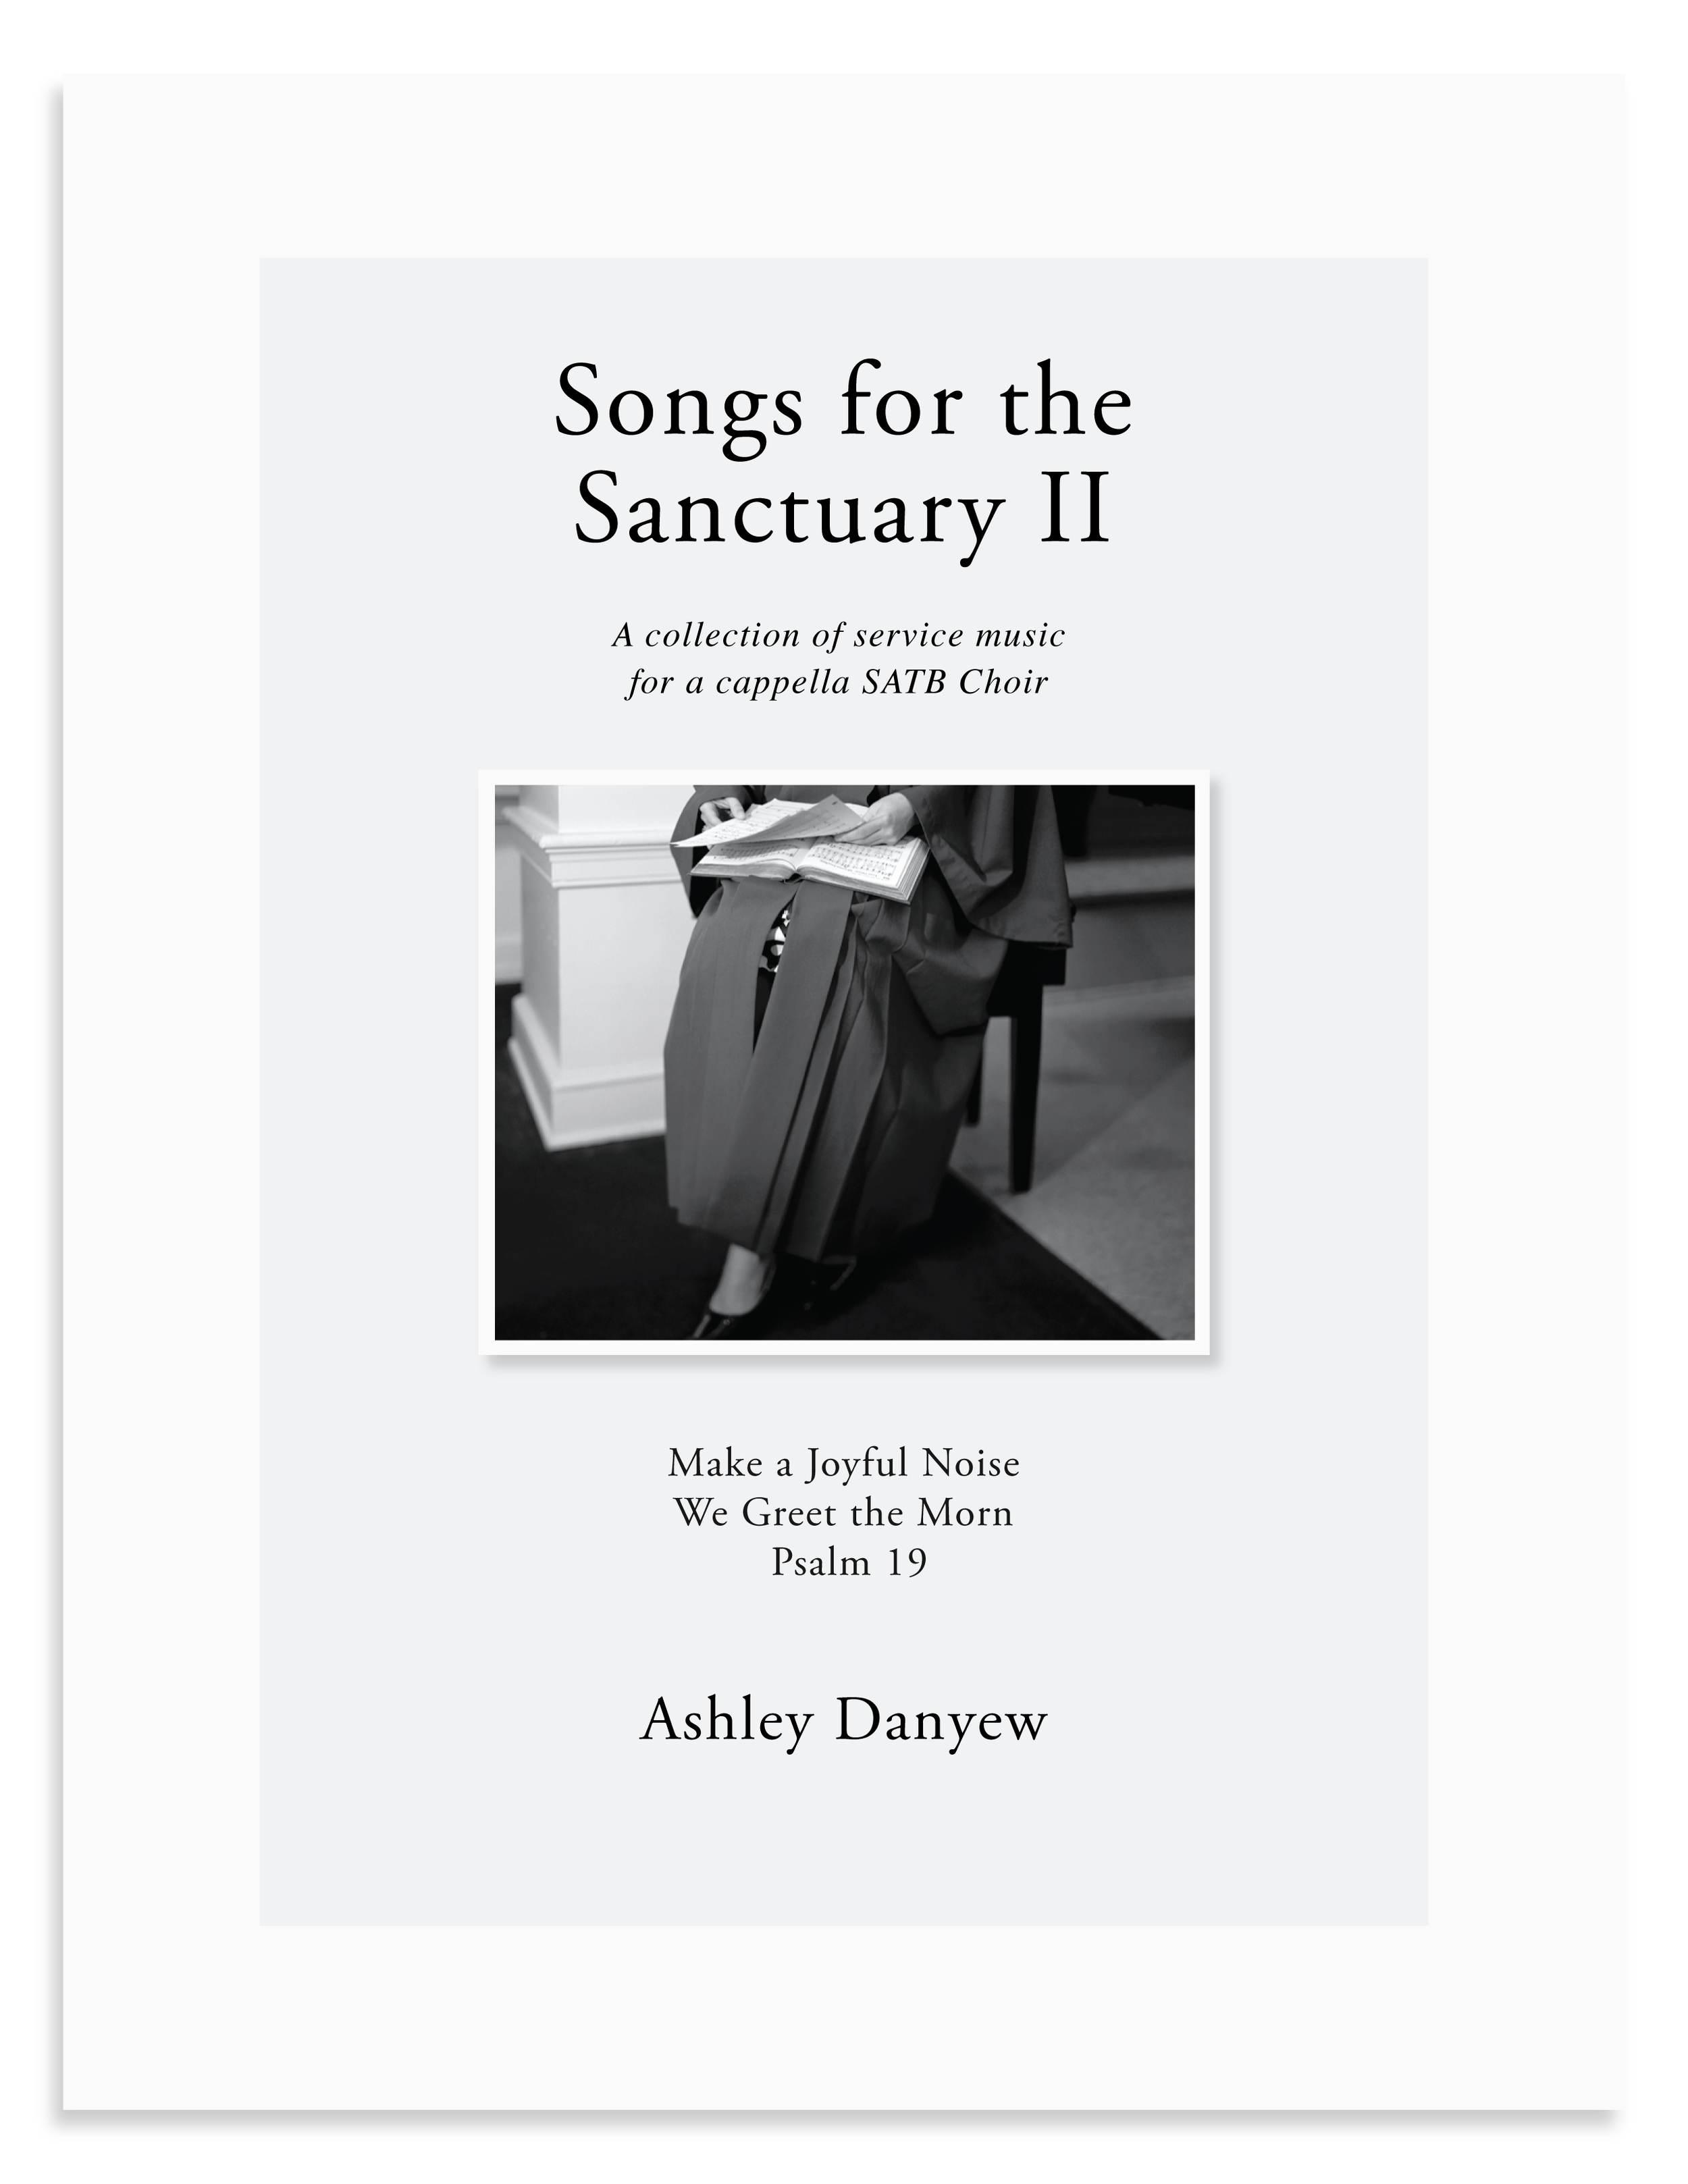 Songs from the Sanctuary II by Ashley Danyew.png